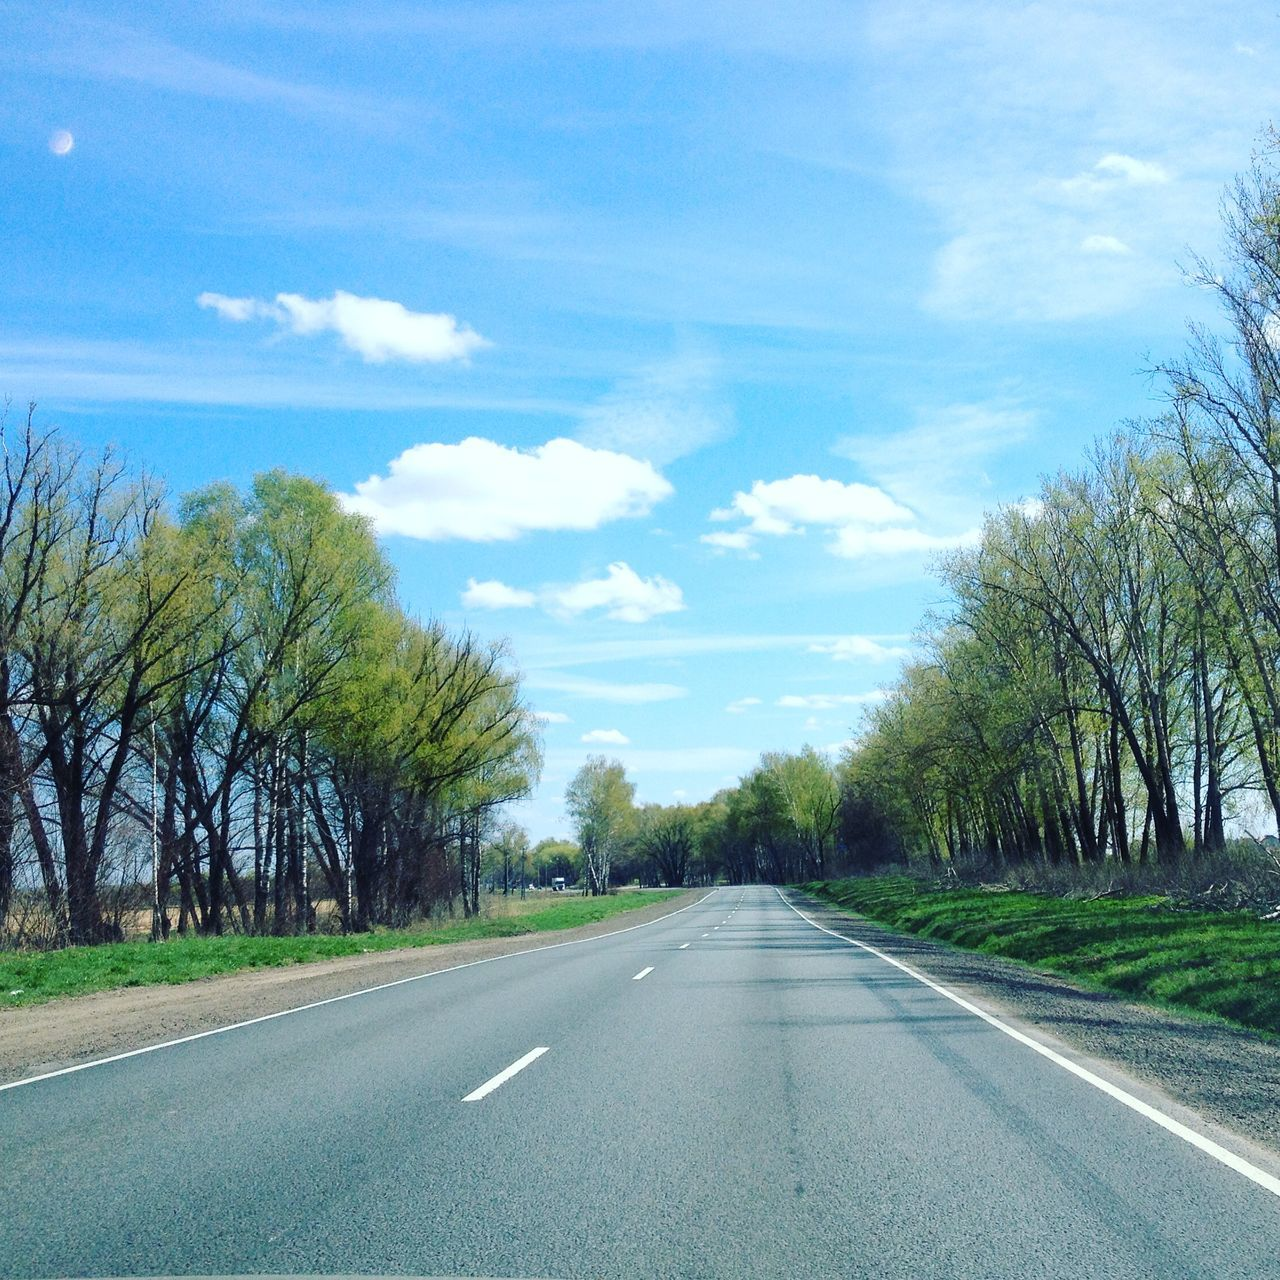 Asphalt Beauty In Nature Blue Car Car Point Of View Cloud - Sky Day Diminishing Perspective Dividing Line Journey Landscape Nature No People Outdoors Plant Road Road Marking Scenics Sky The Way Forward Tranquil Scene Tranquility Transportation Tree White Line